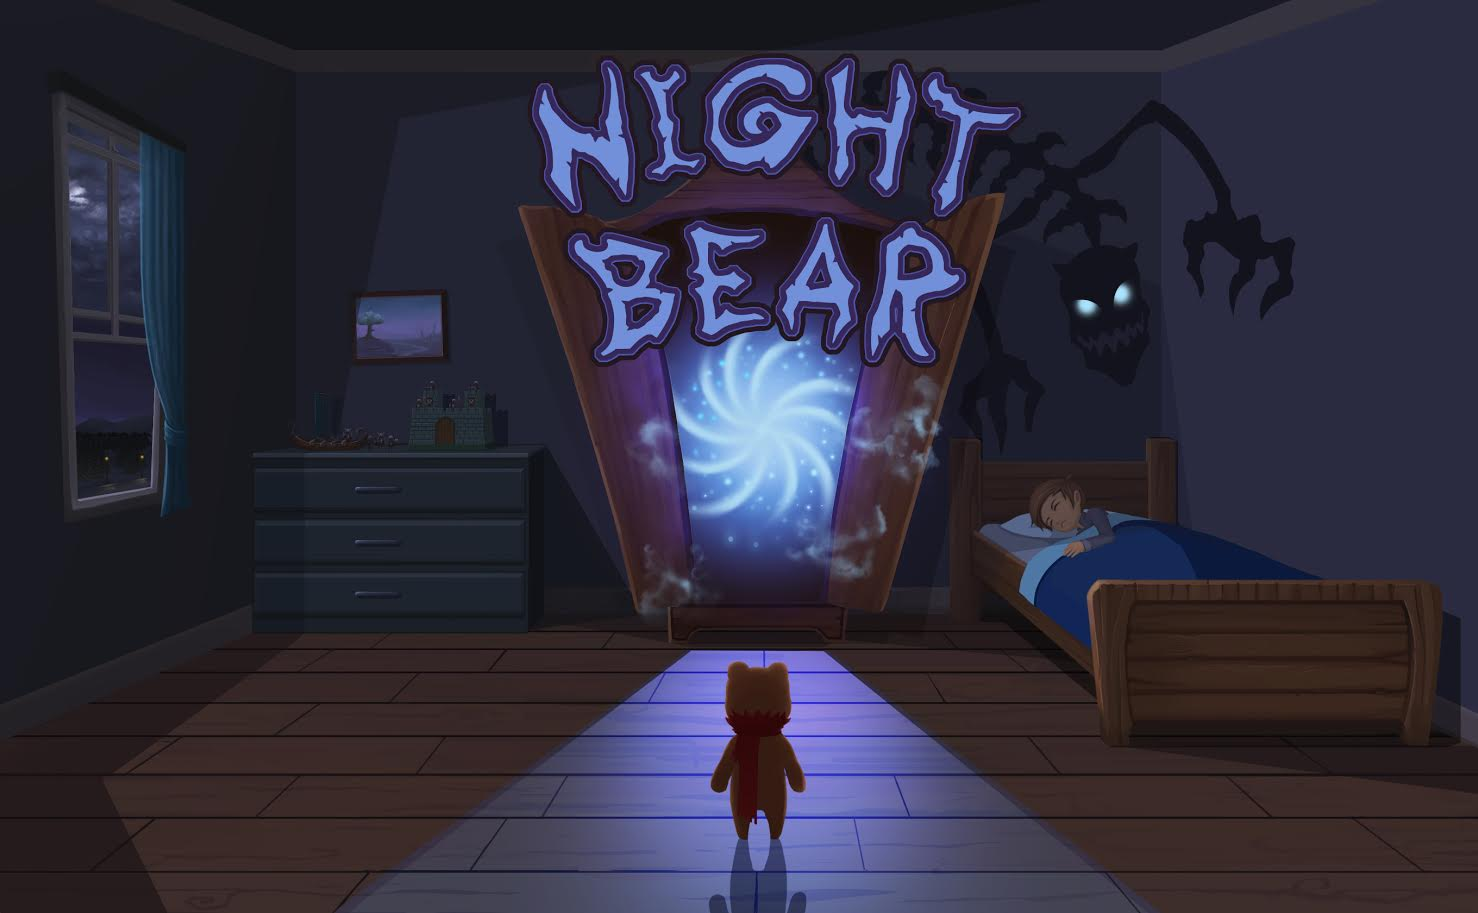 Night Bear